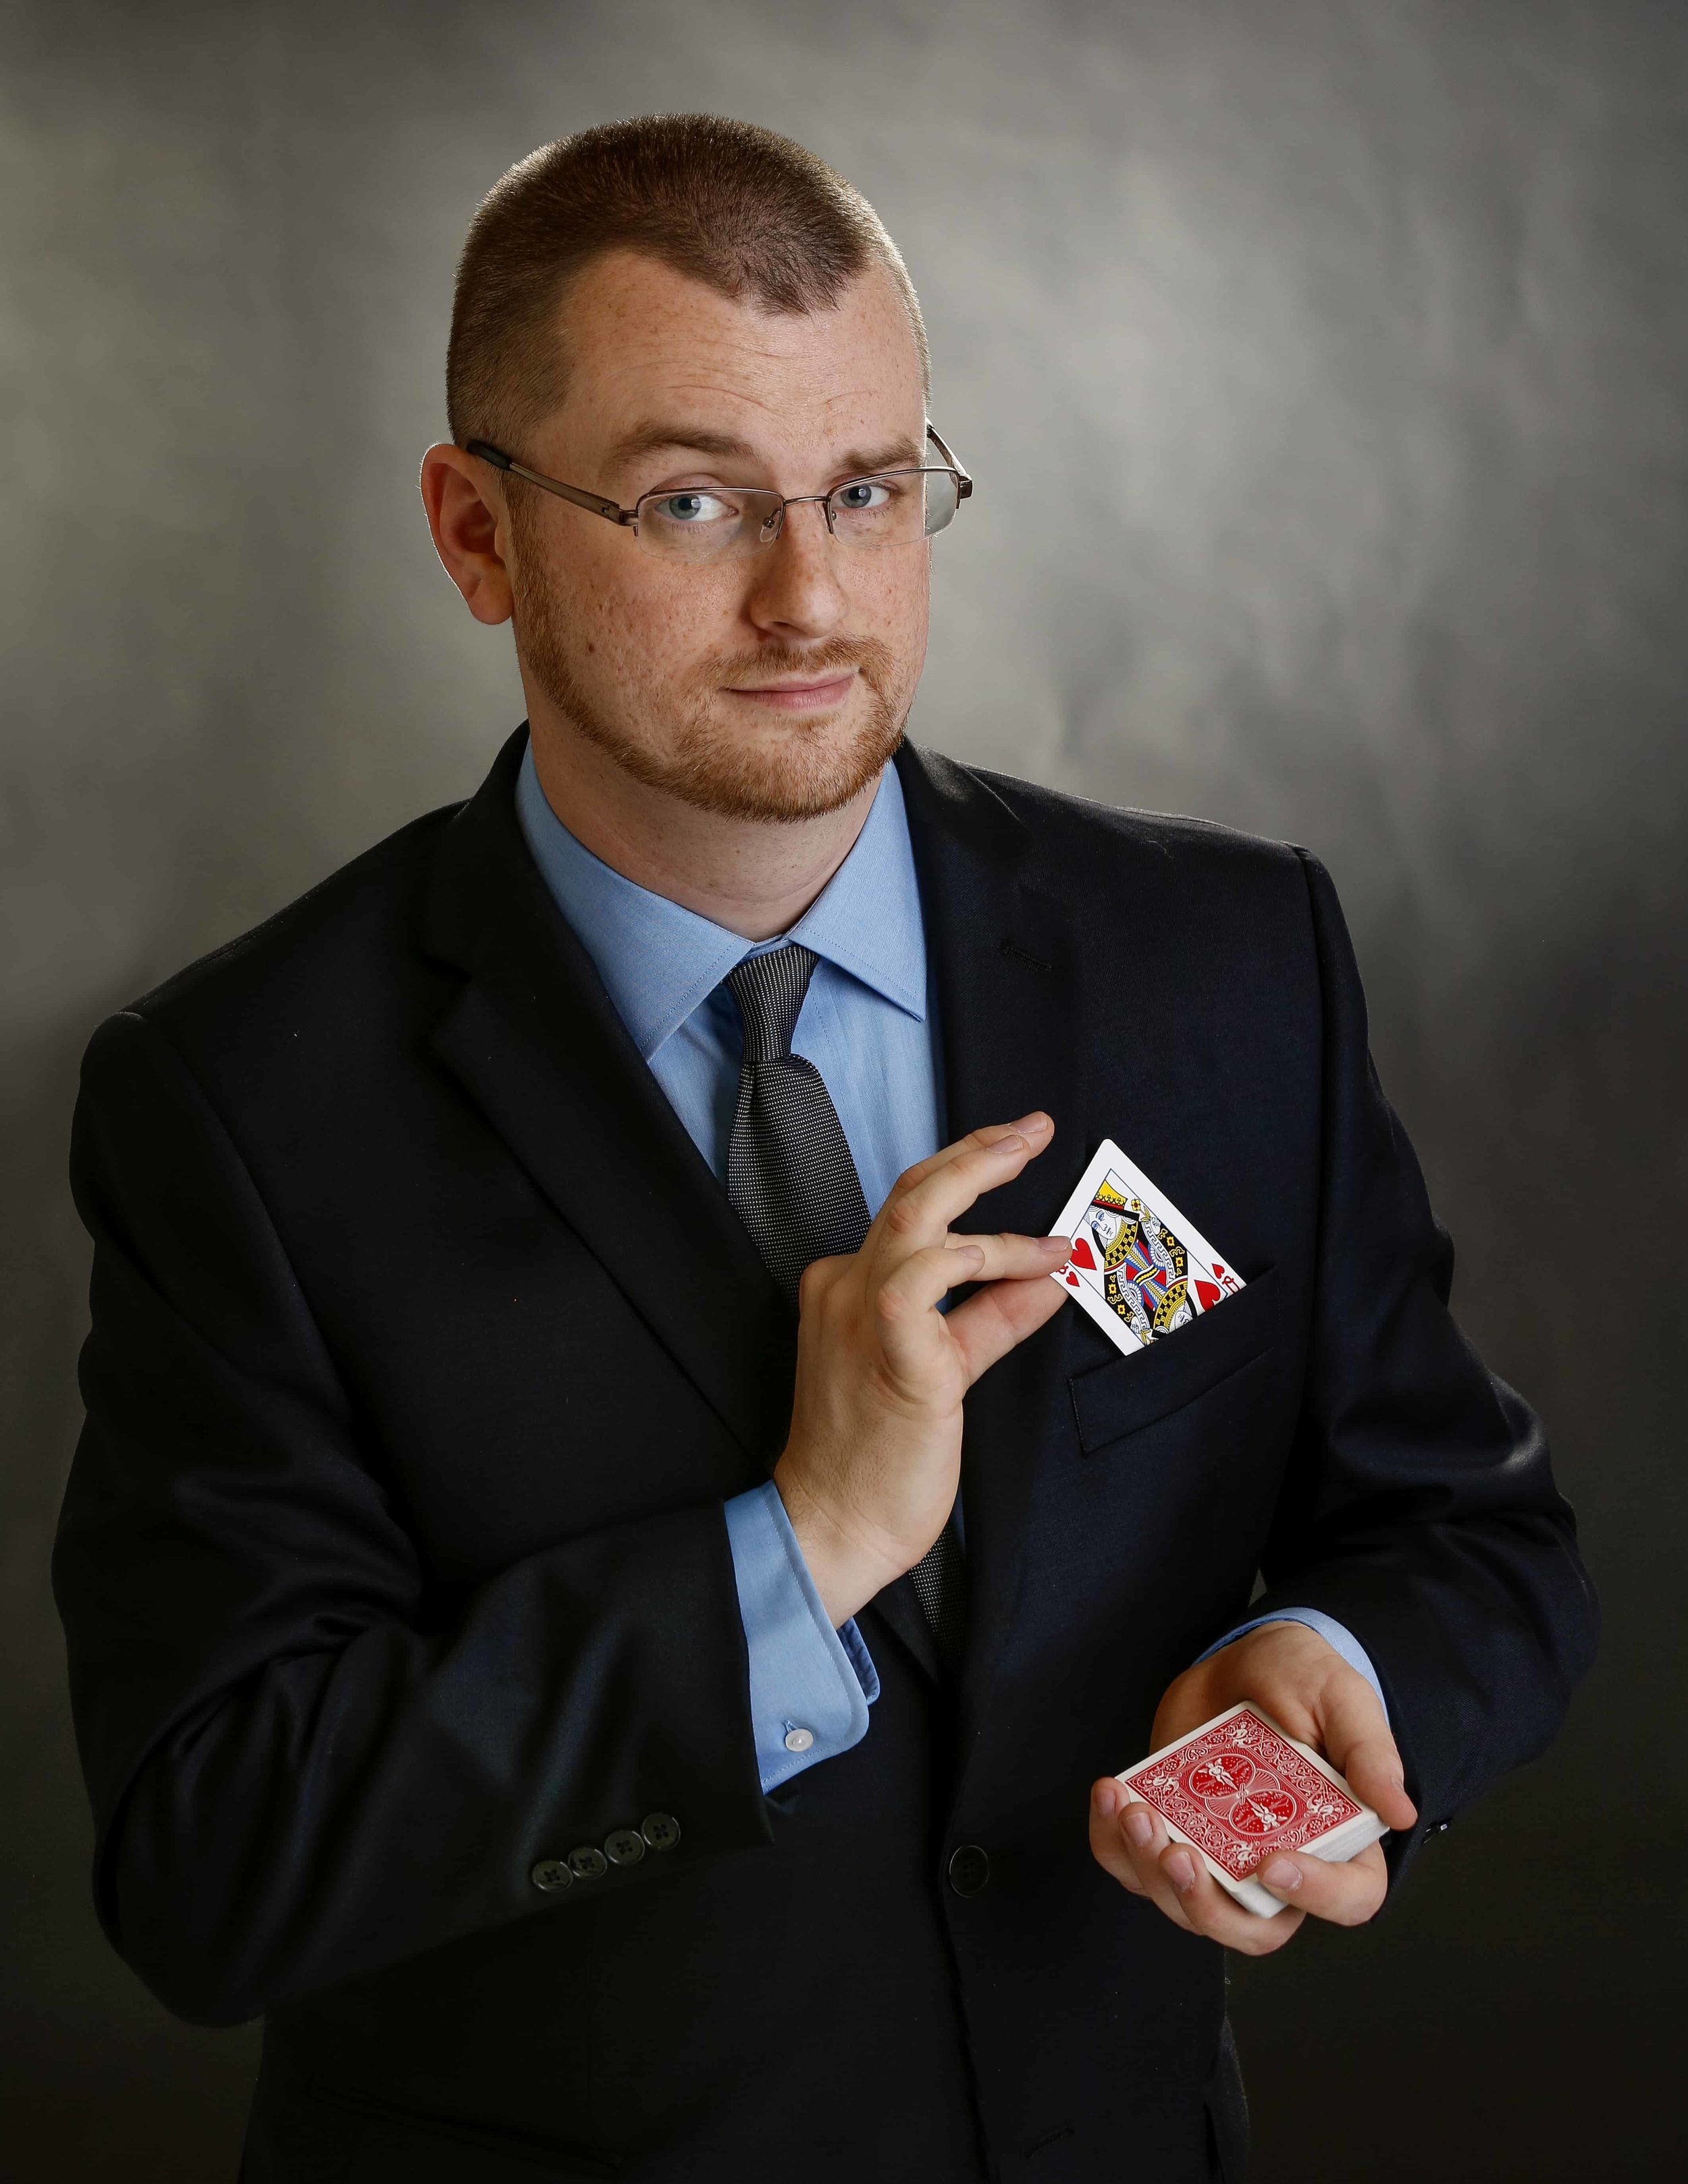 About Indianapolis Magician Caleb Wiles